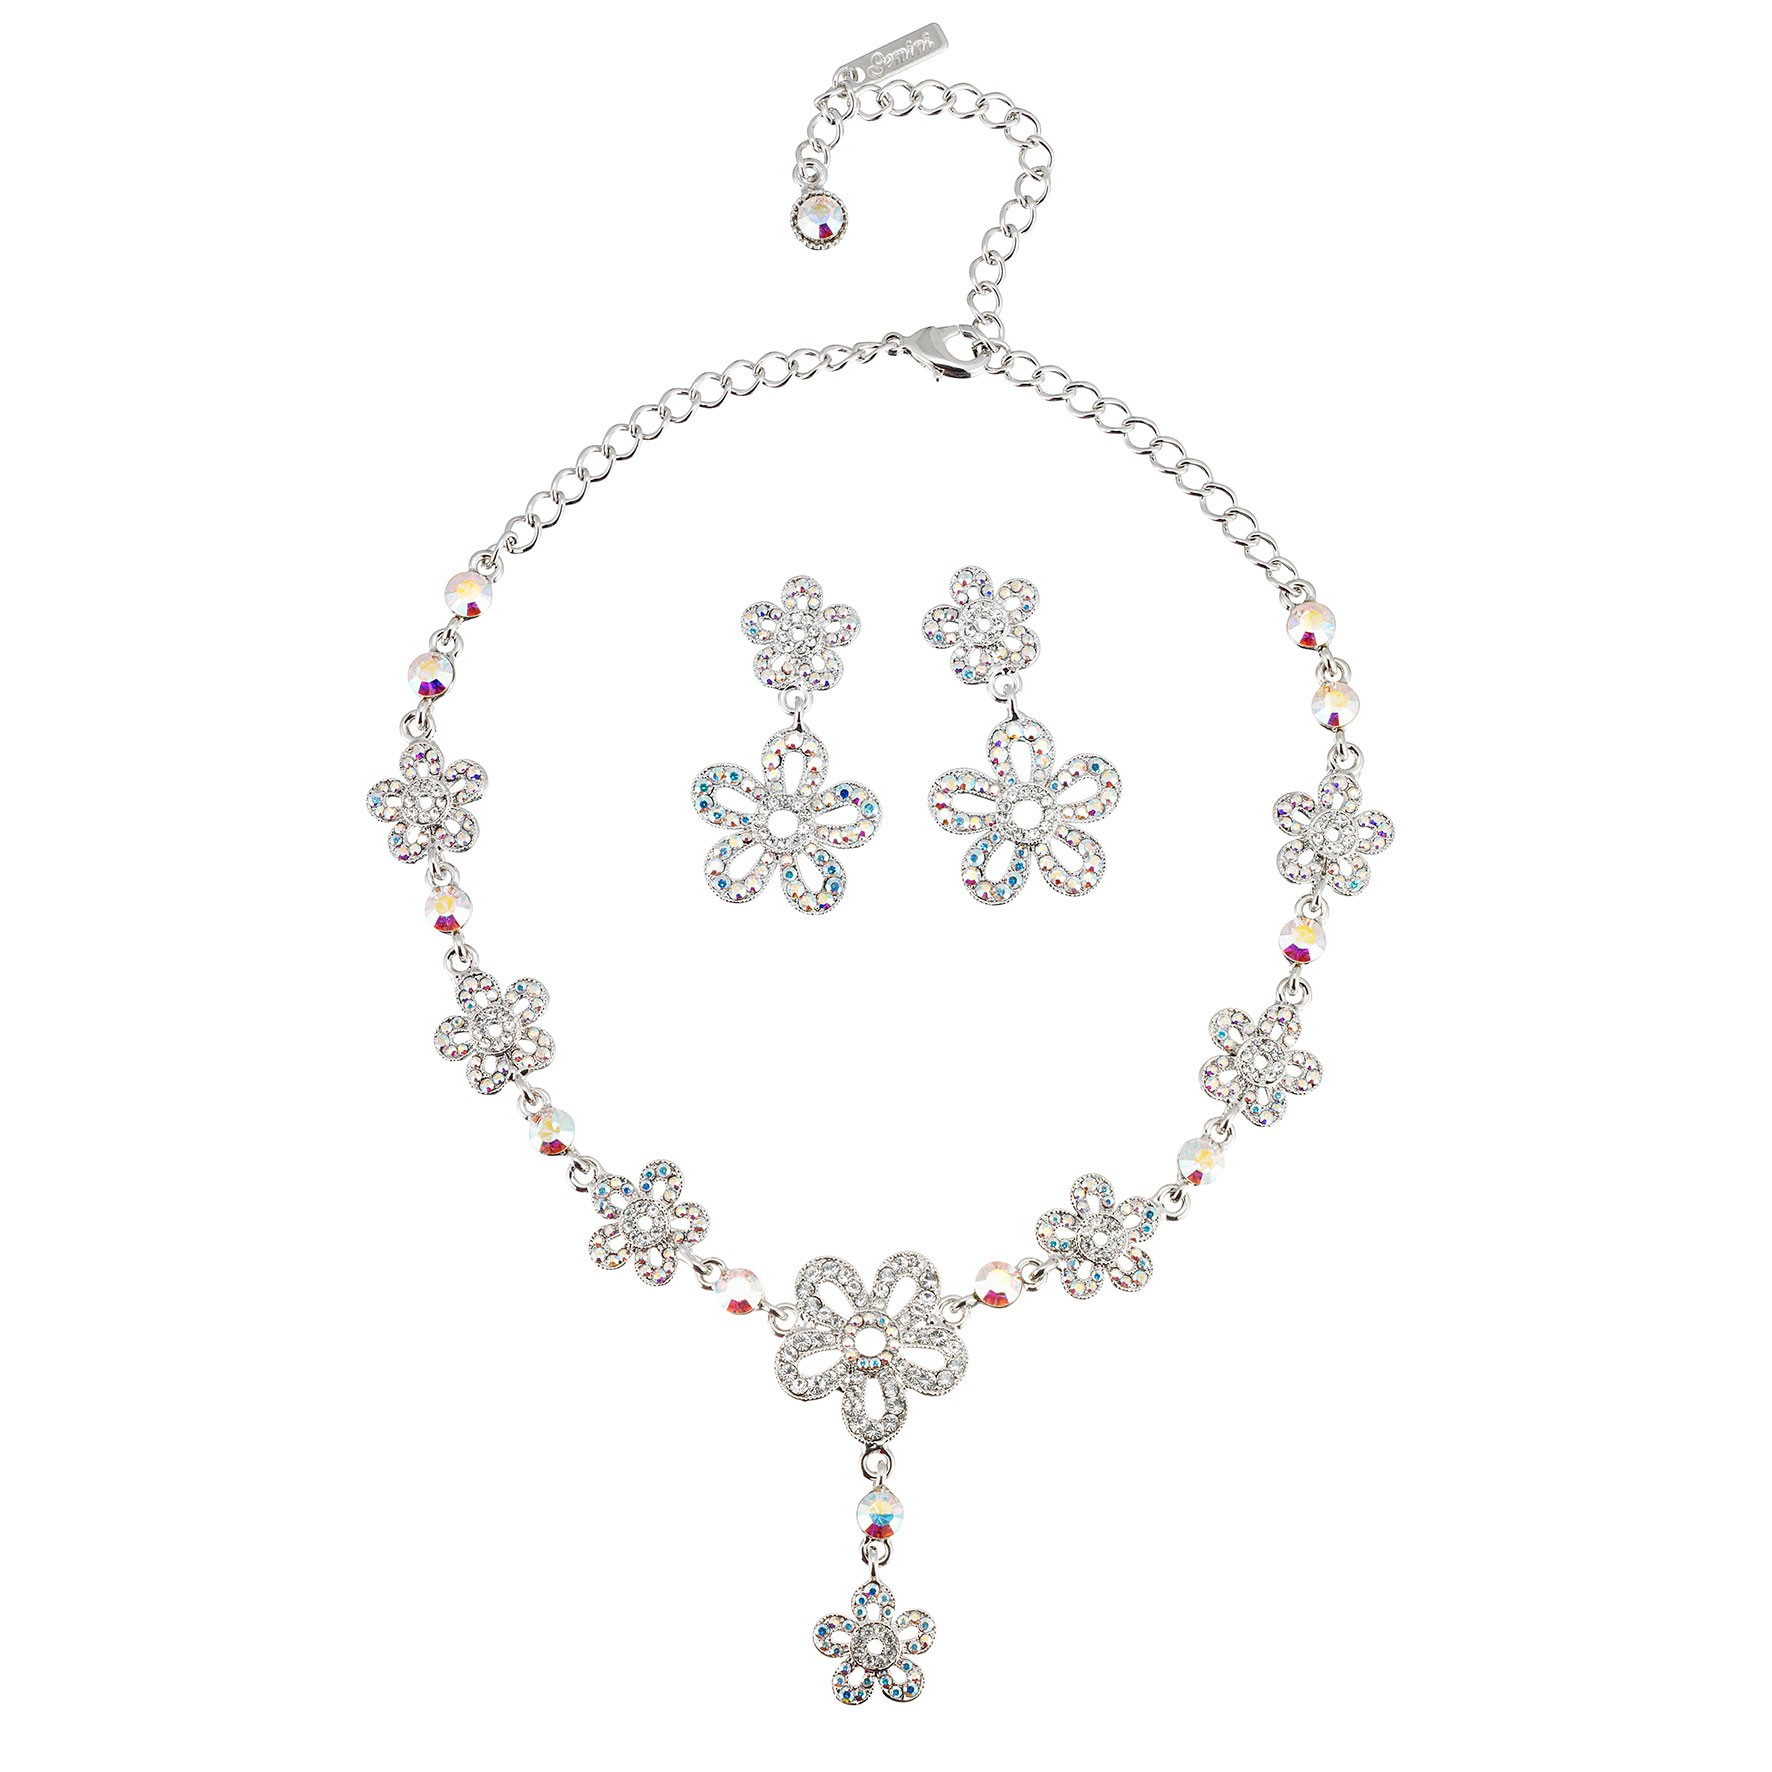 Swarovski Crystal Ab Crystal Jewellery Set Necklace And Earrings